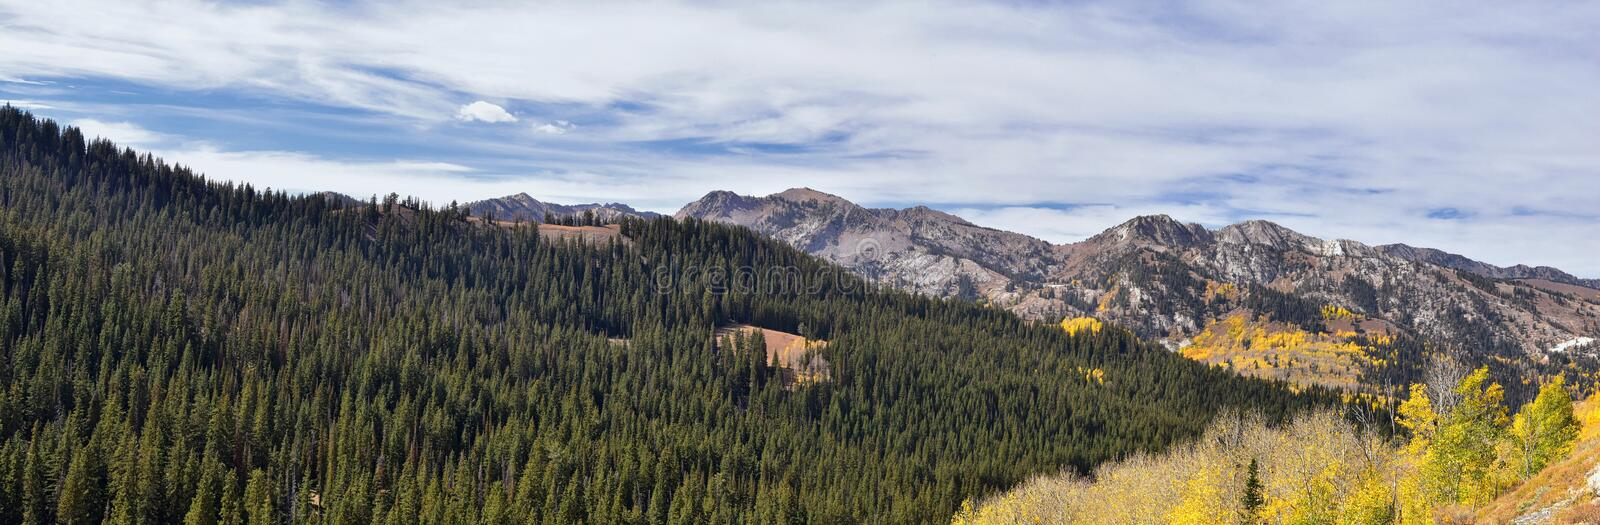 Guardsman Pass views of Panoramic Landscape of the Pass from the Brighton side by Midway and Heber Valley along the Wasatch Front. Rocky Mountains, Fall Leaf royalty free stock photos